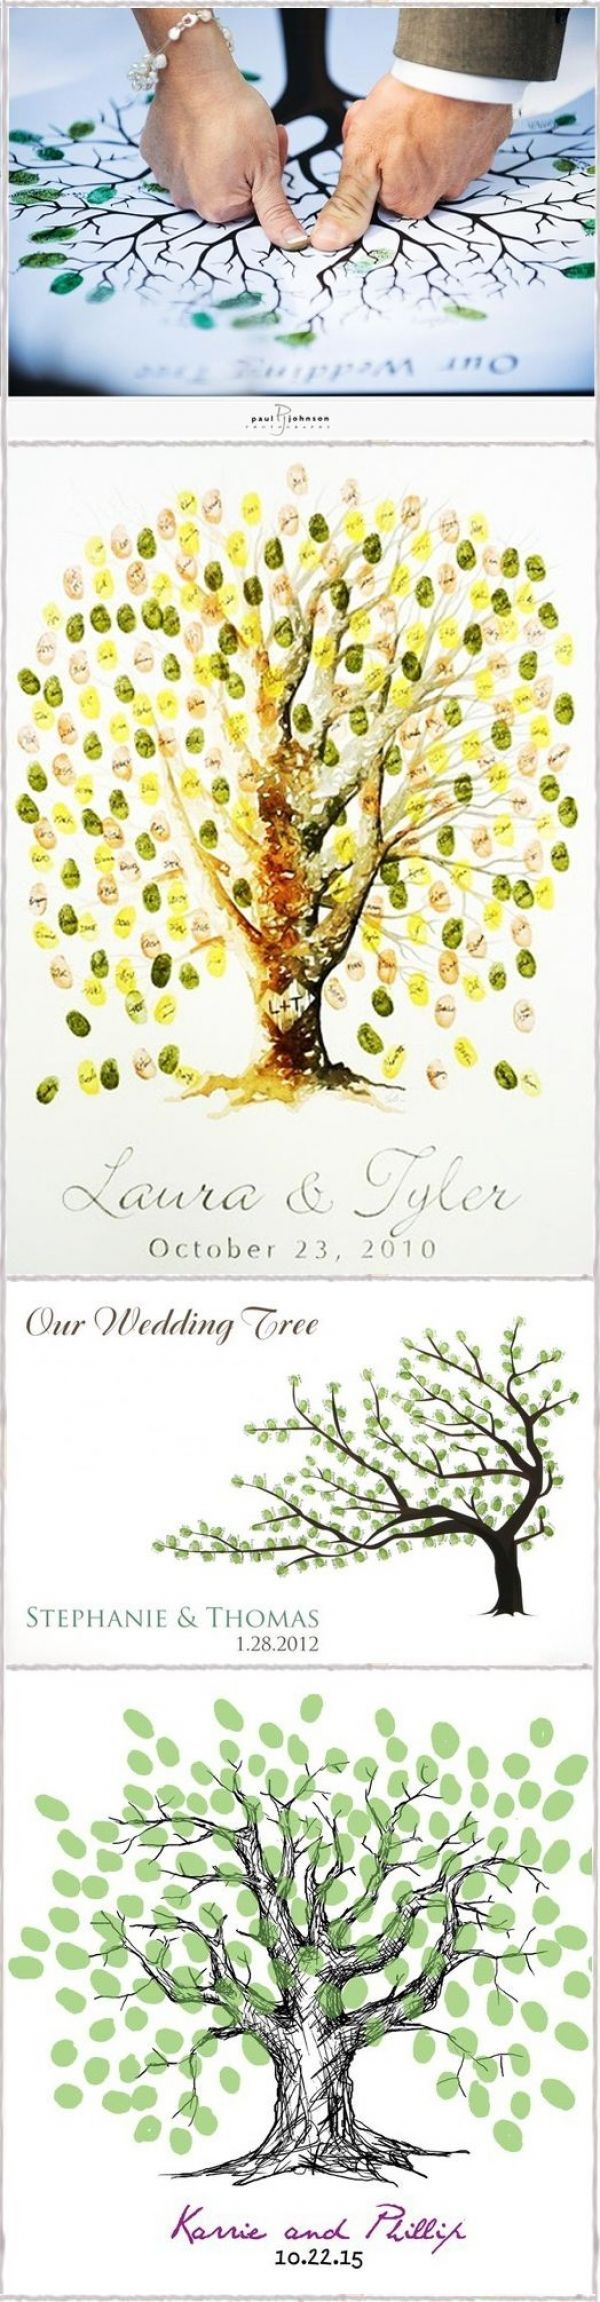 #fingerprints #wedding #tree #signatures #names #weedingkeepsake